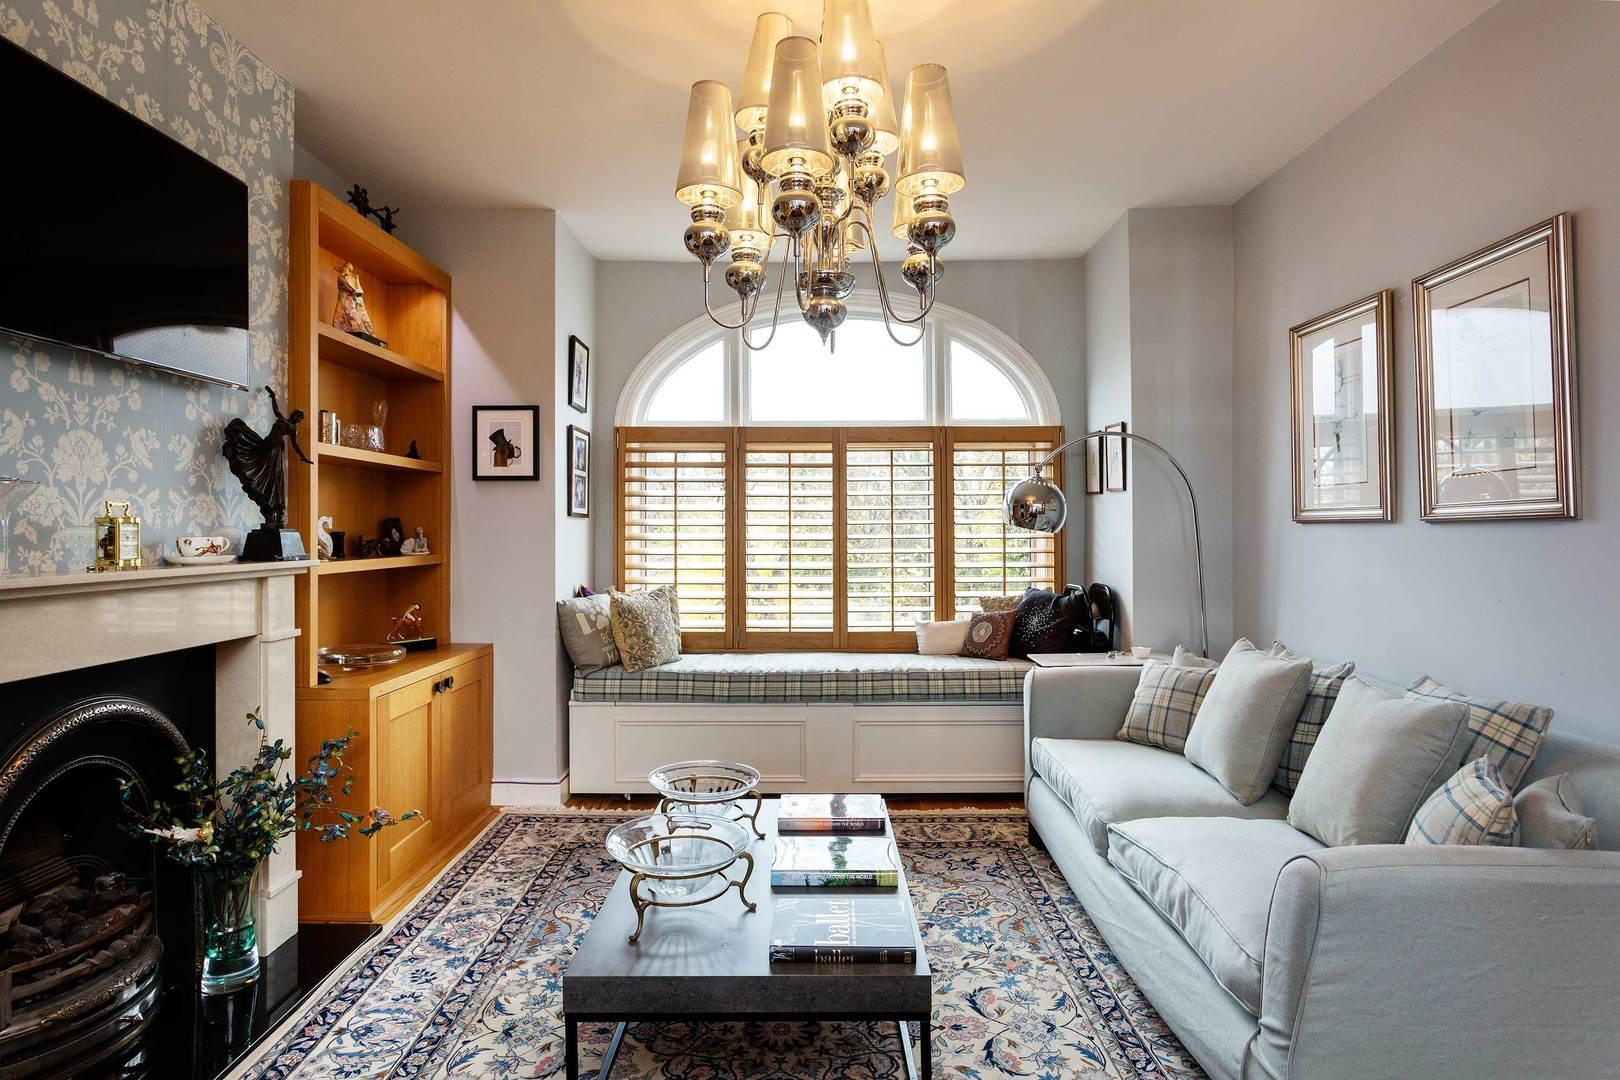 Property Image 1 - Charming Fulham Apartment, Near the River